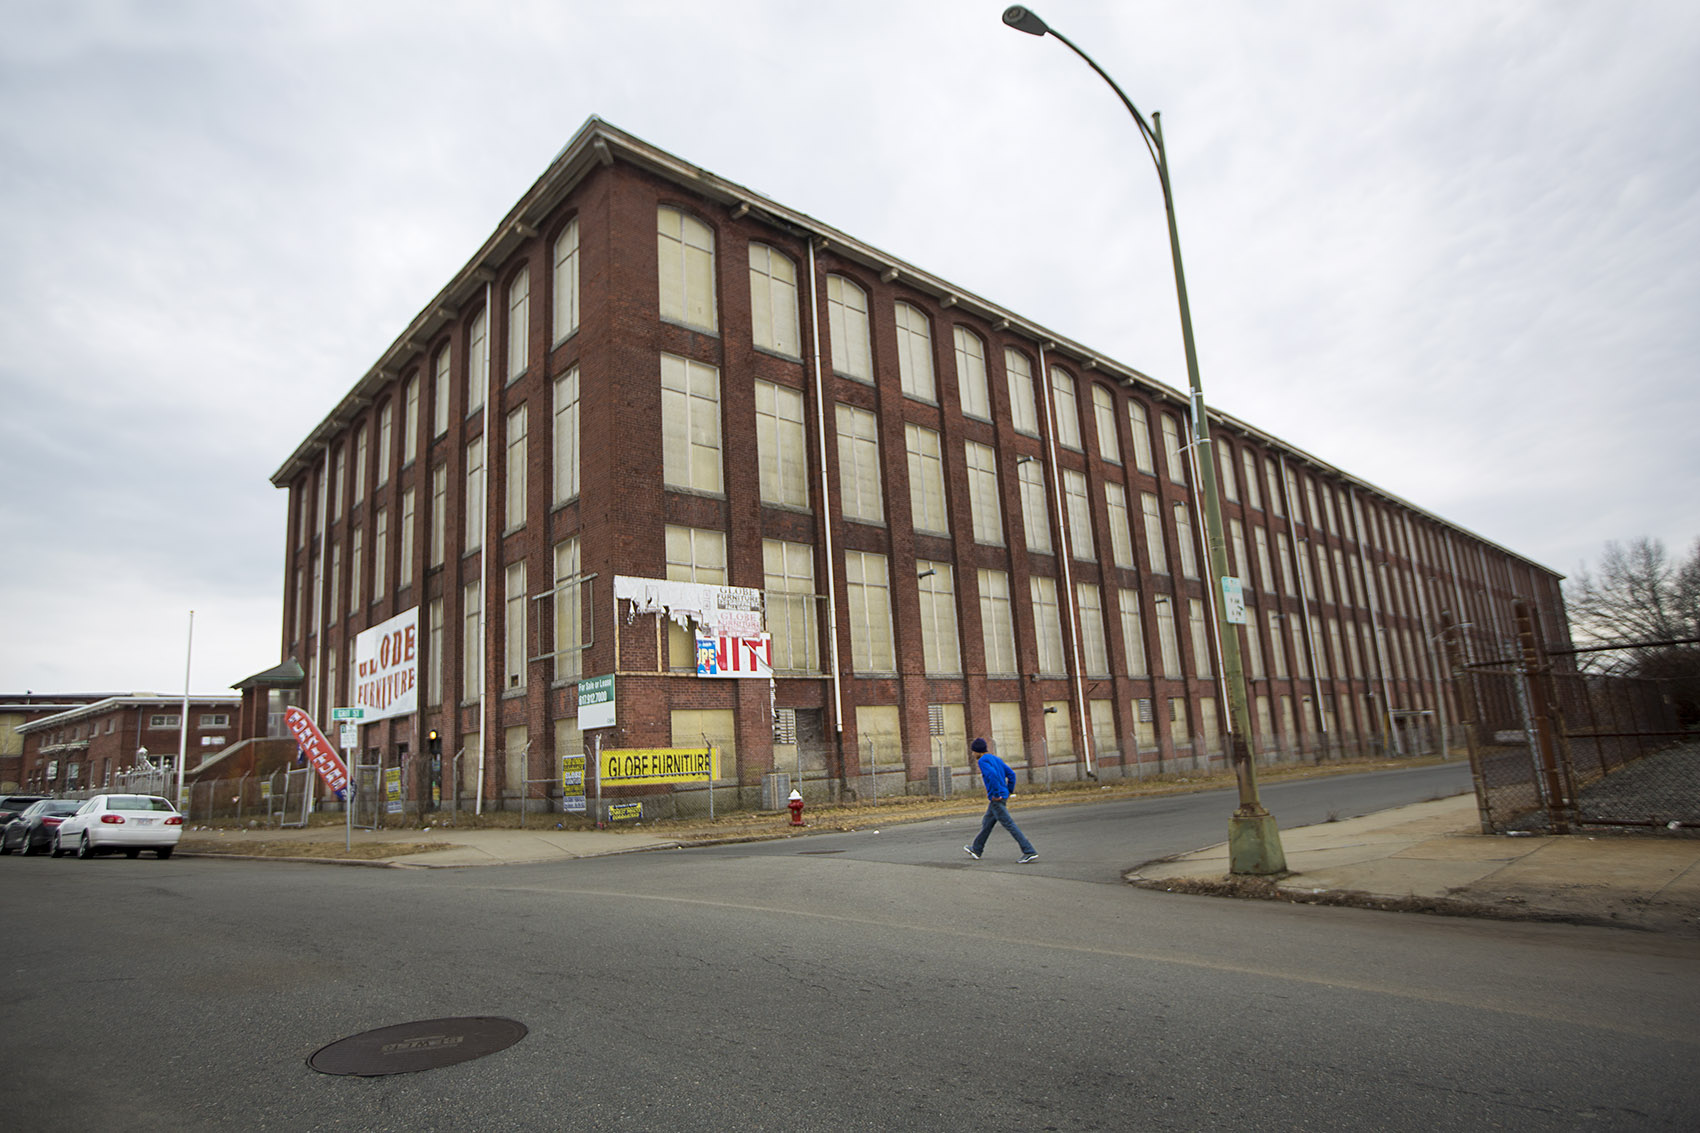 On March 6, 2007, agents raided the Michael Bianco Inc. plant in New Bedford, which at the time was housed in this building. The owner and several managers were arrested, and 361 workers were detained. (Jesse Costa/WBUR)